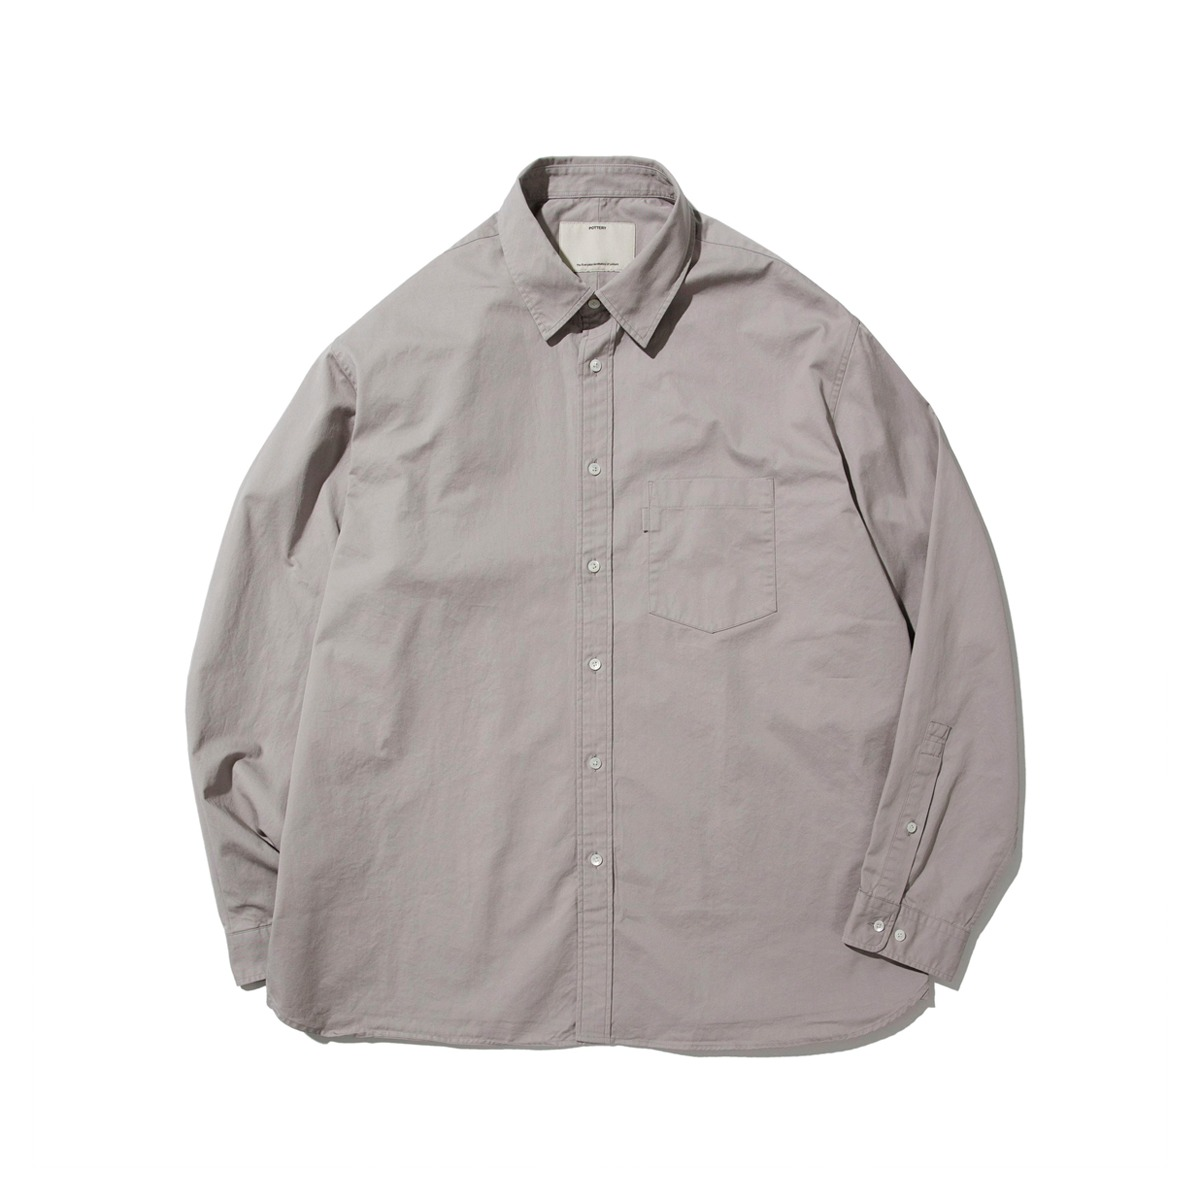 [POTTERY] COMFORT SHIRT 'GRAY'